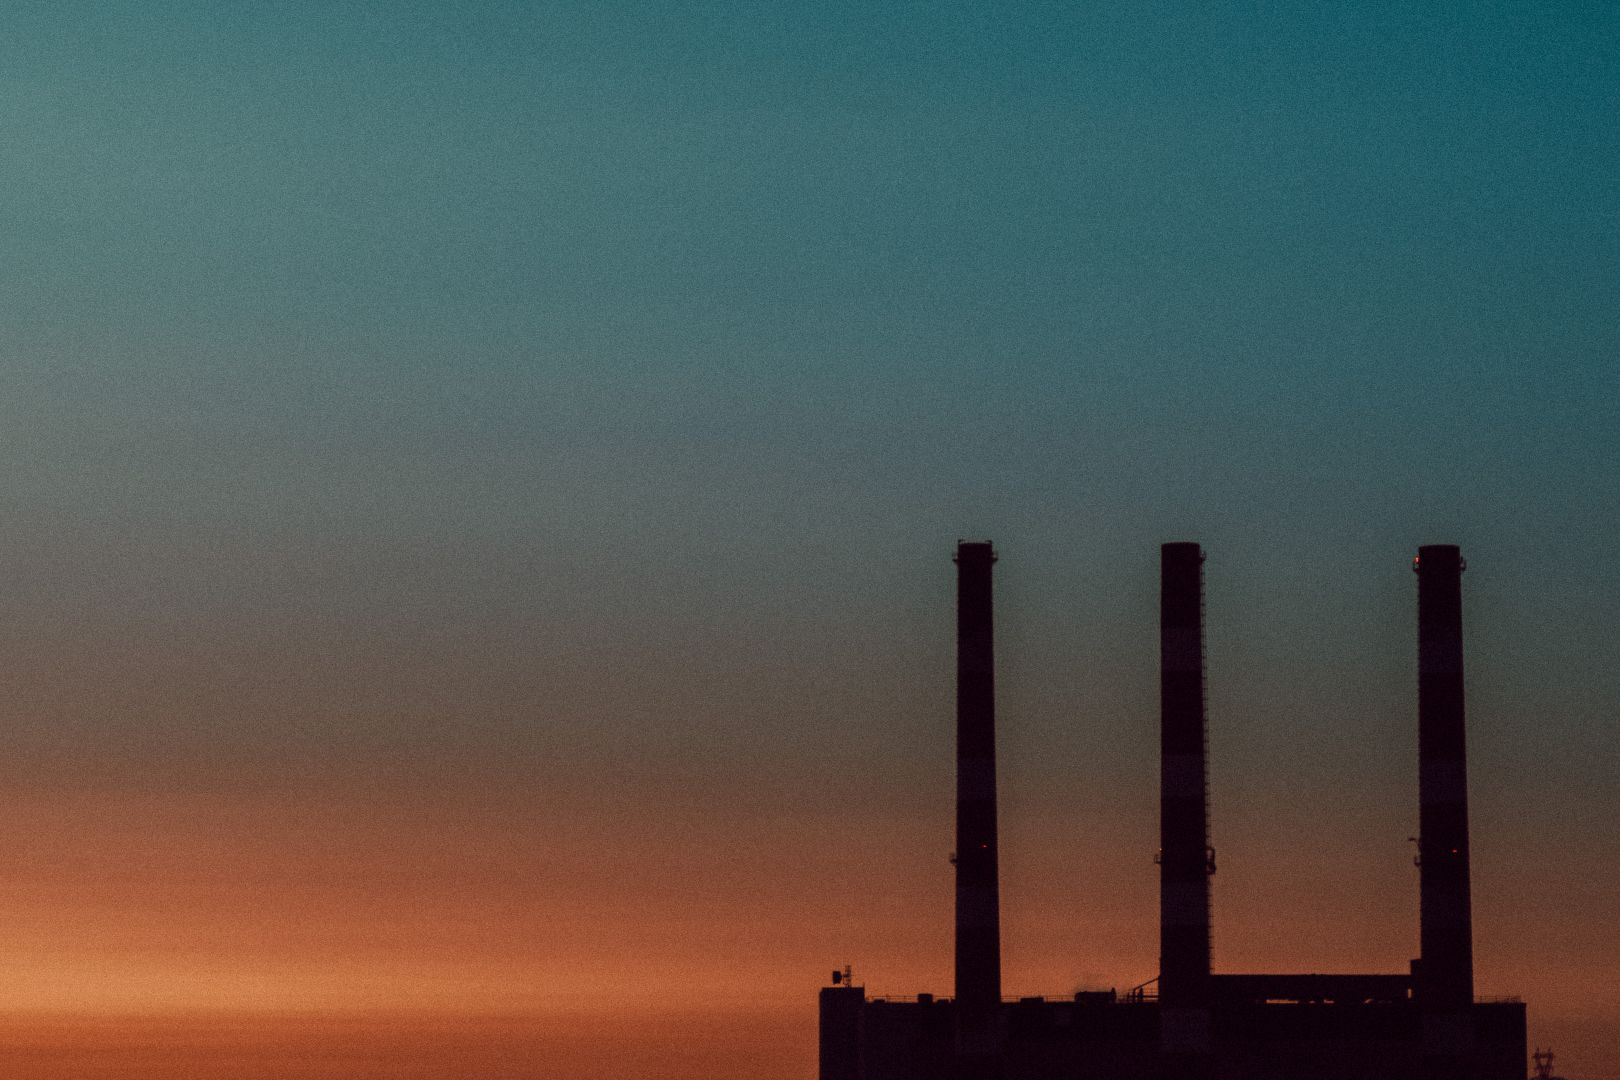 A photo depicting Pulp Mill Stacks at Dusk Saint John